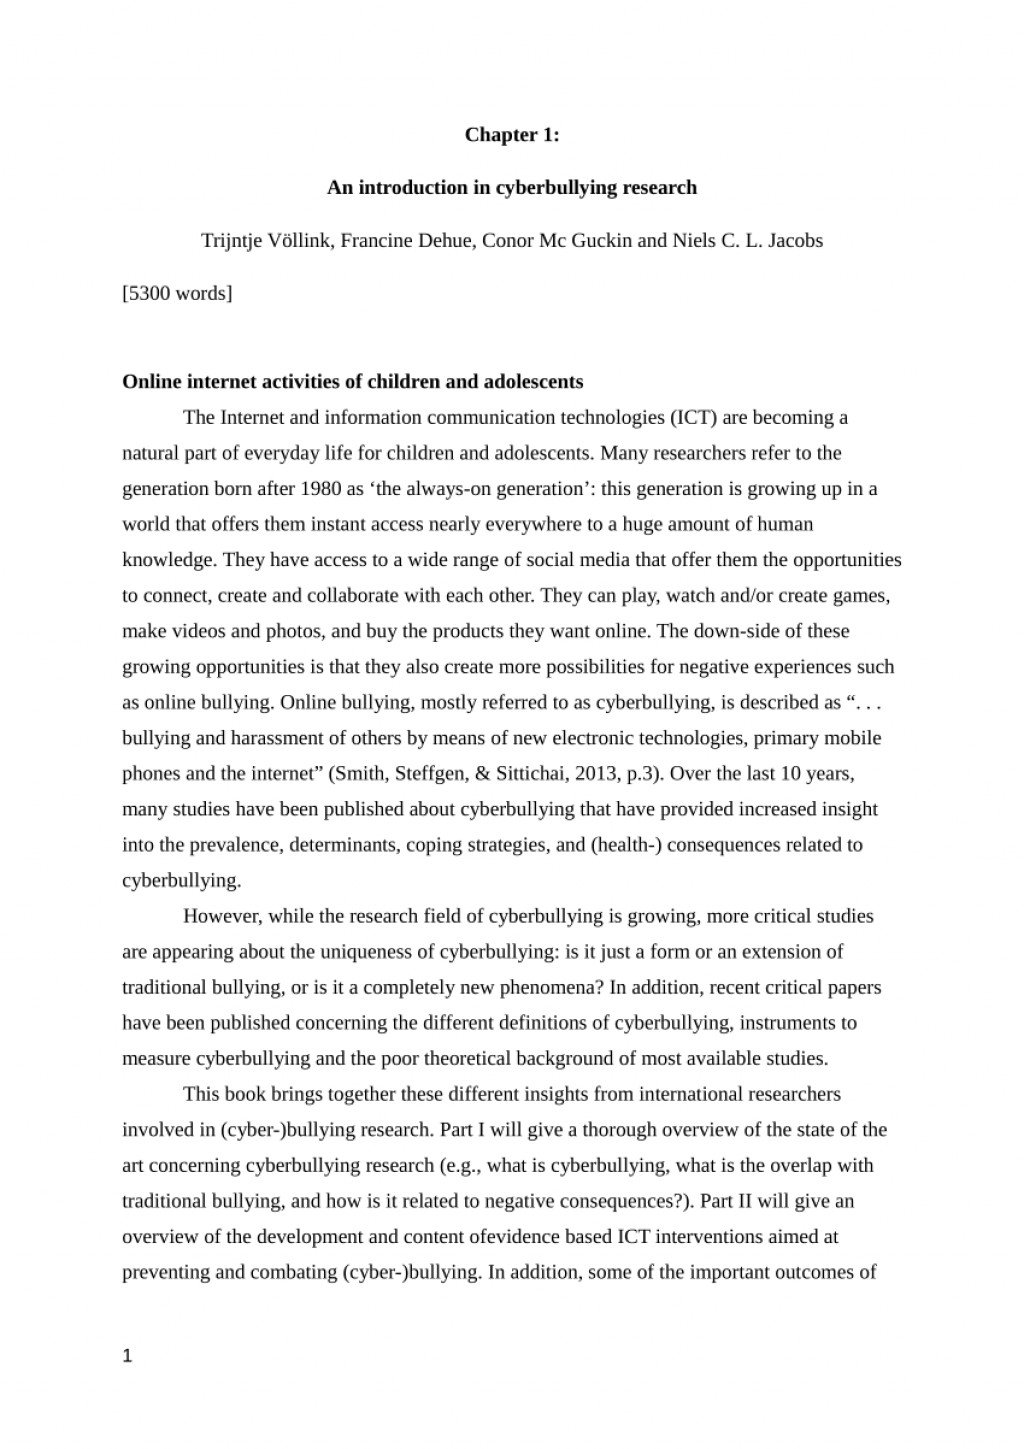 001 Cyberbullying Research Articles Paper Wondrous About Chapter 1 Studies On The Effects Of In Philippines Pdf Large